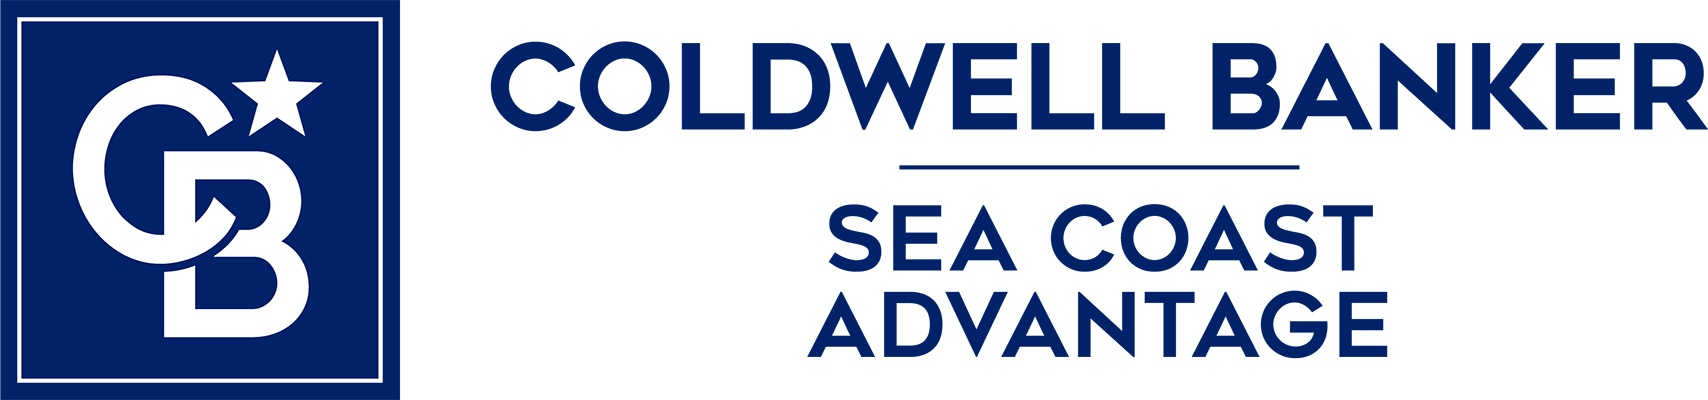 Nancy Nipper - Coldwell Banker Sea Coast Advantage Realty Logo